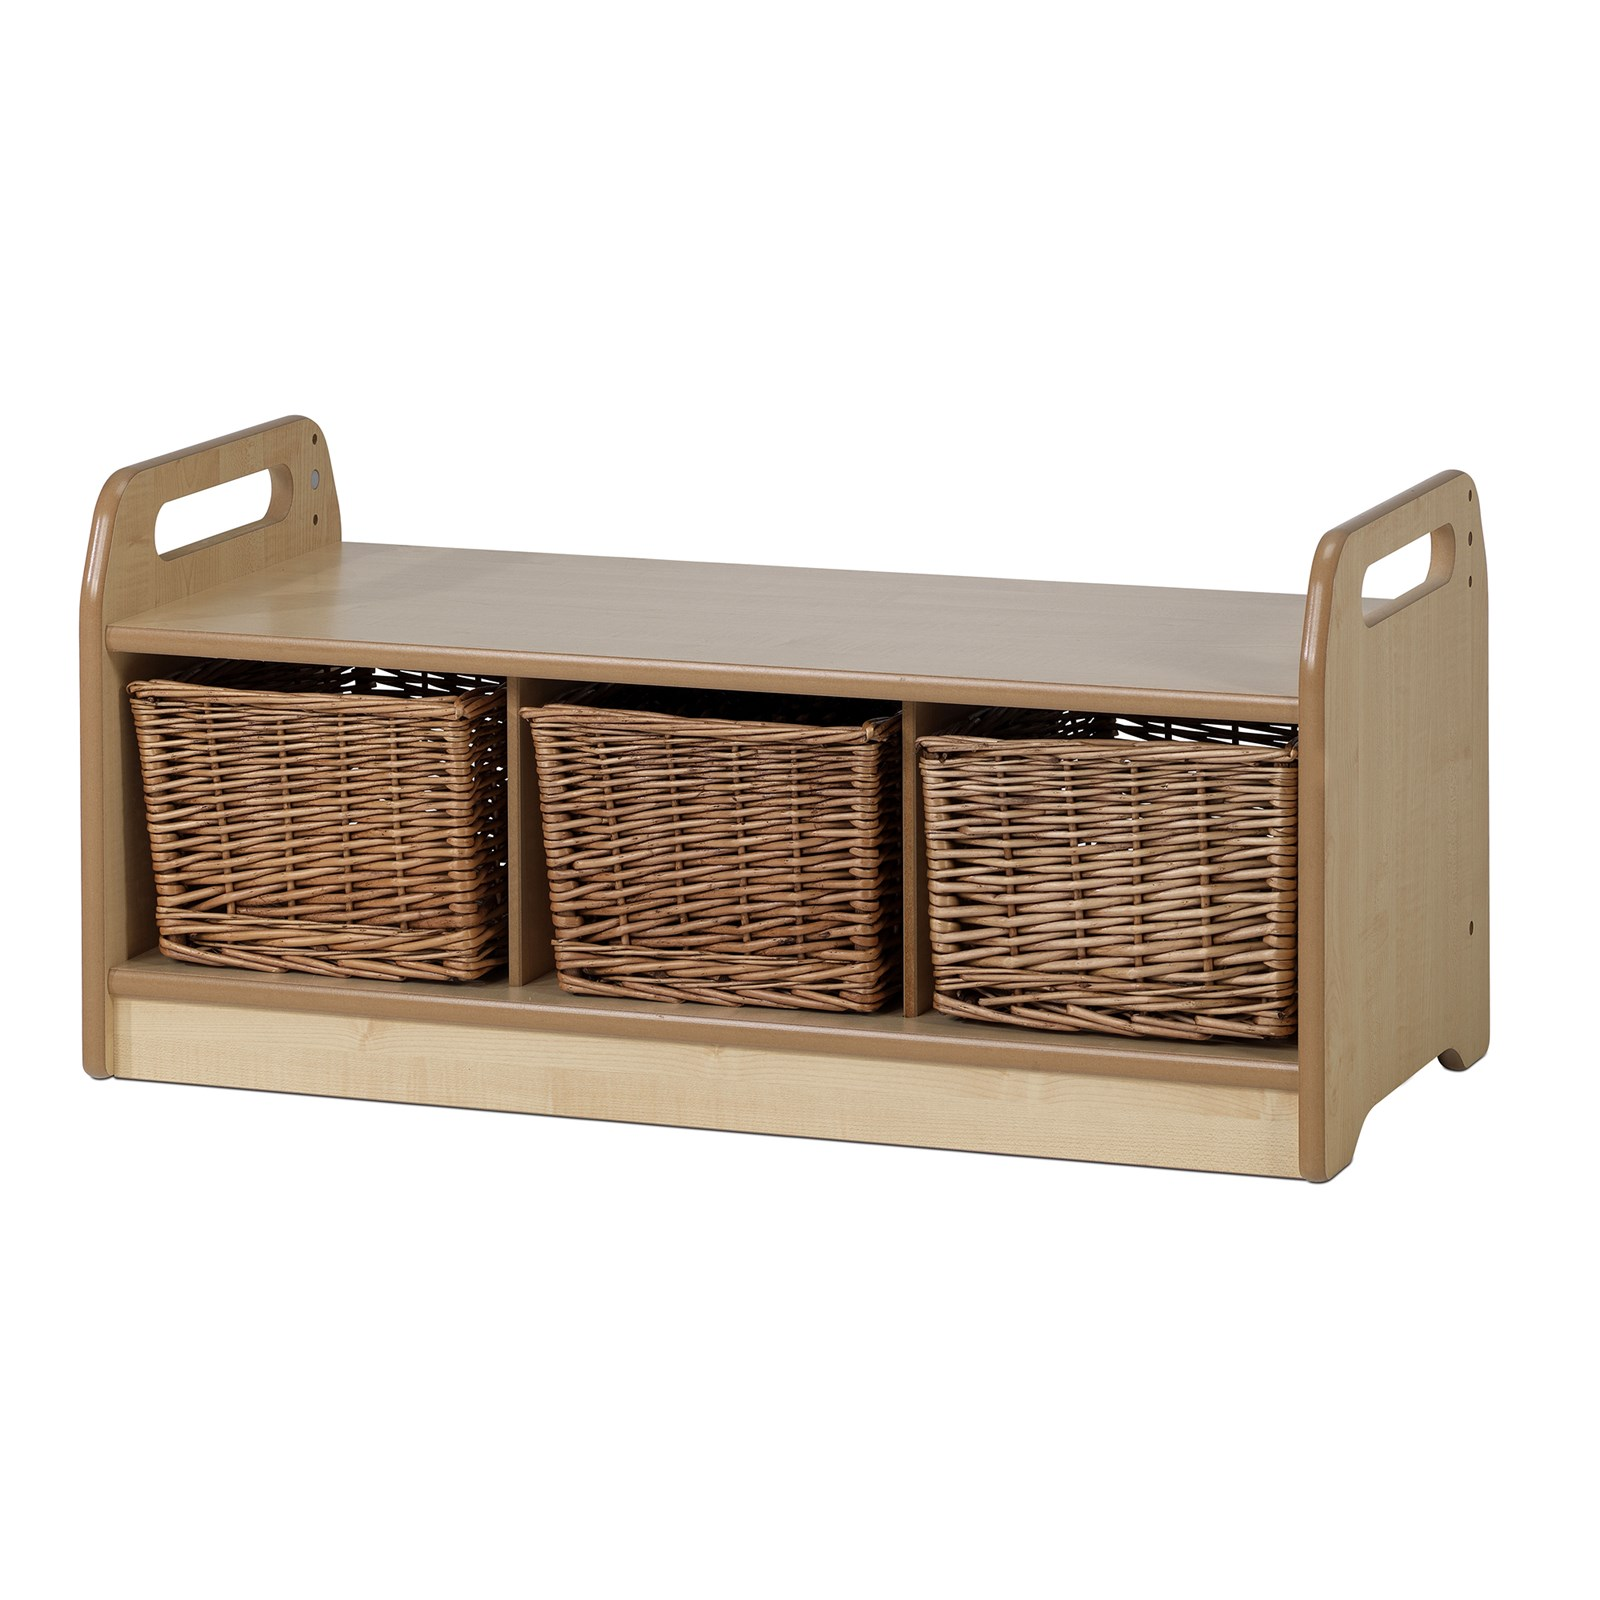 Playscapes Low Level Storage Bench with Wicker Baskets